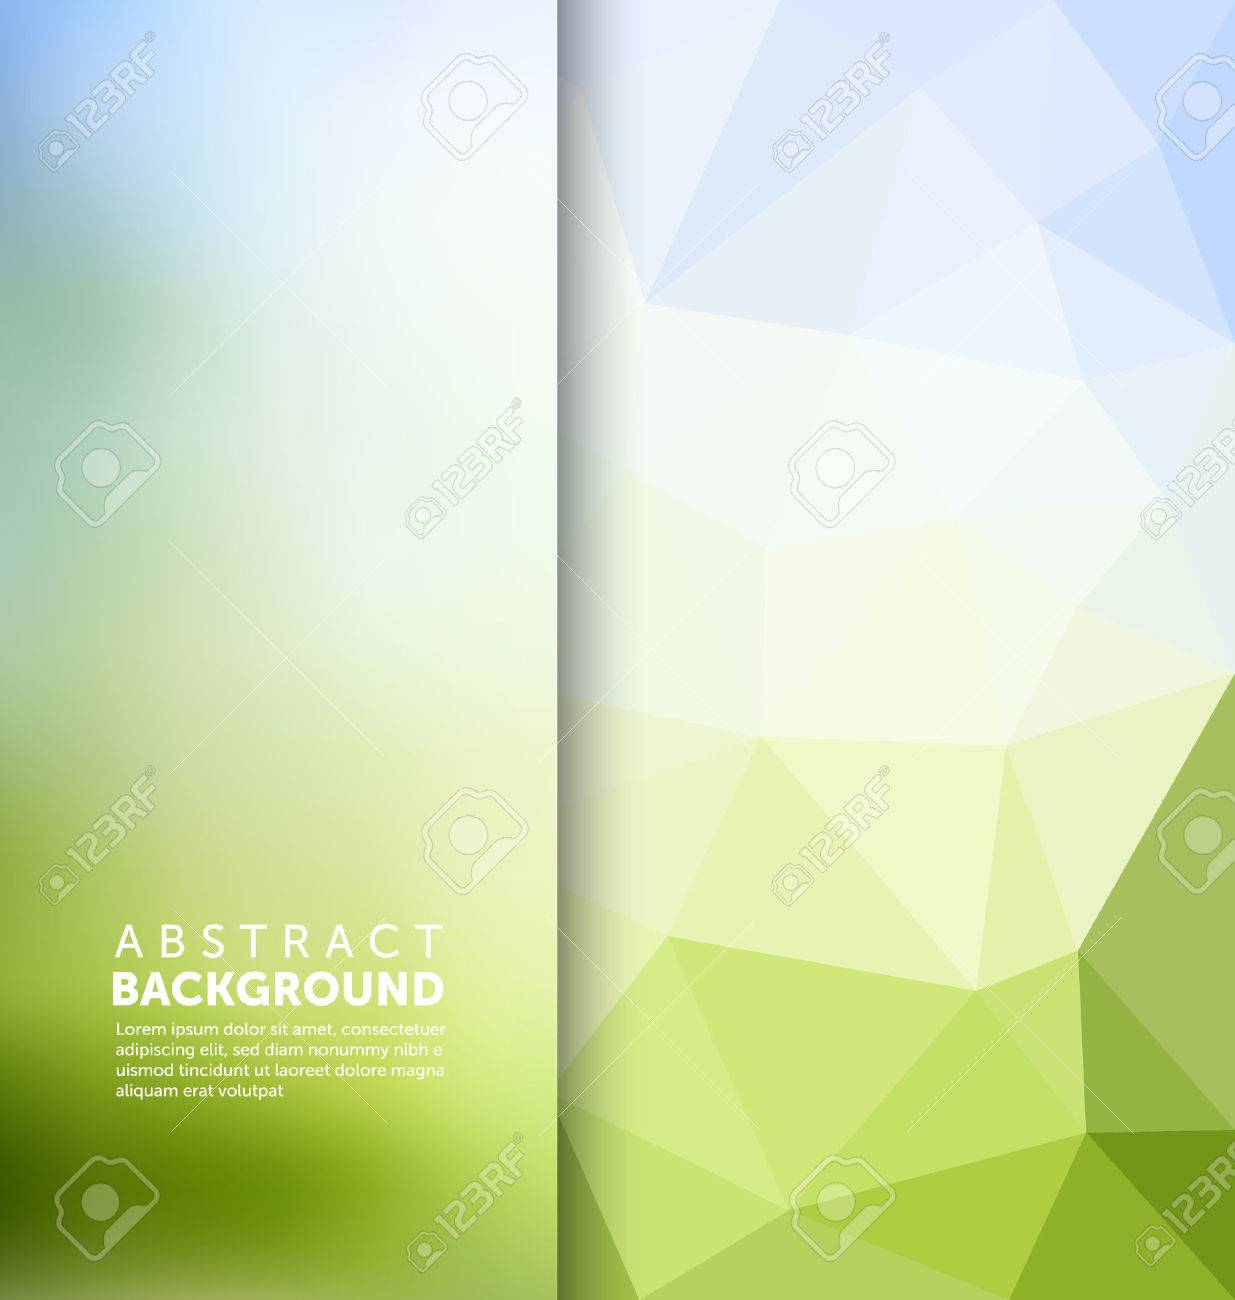 Abstract Background - Triangle and blurred banner design - 45168401